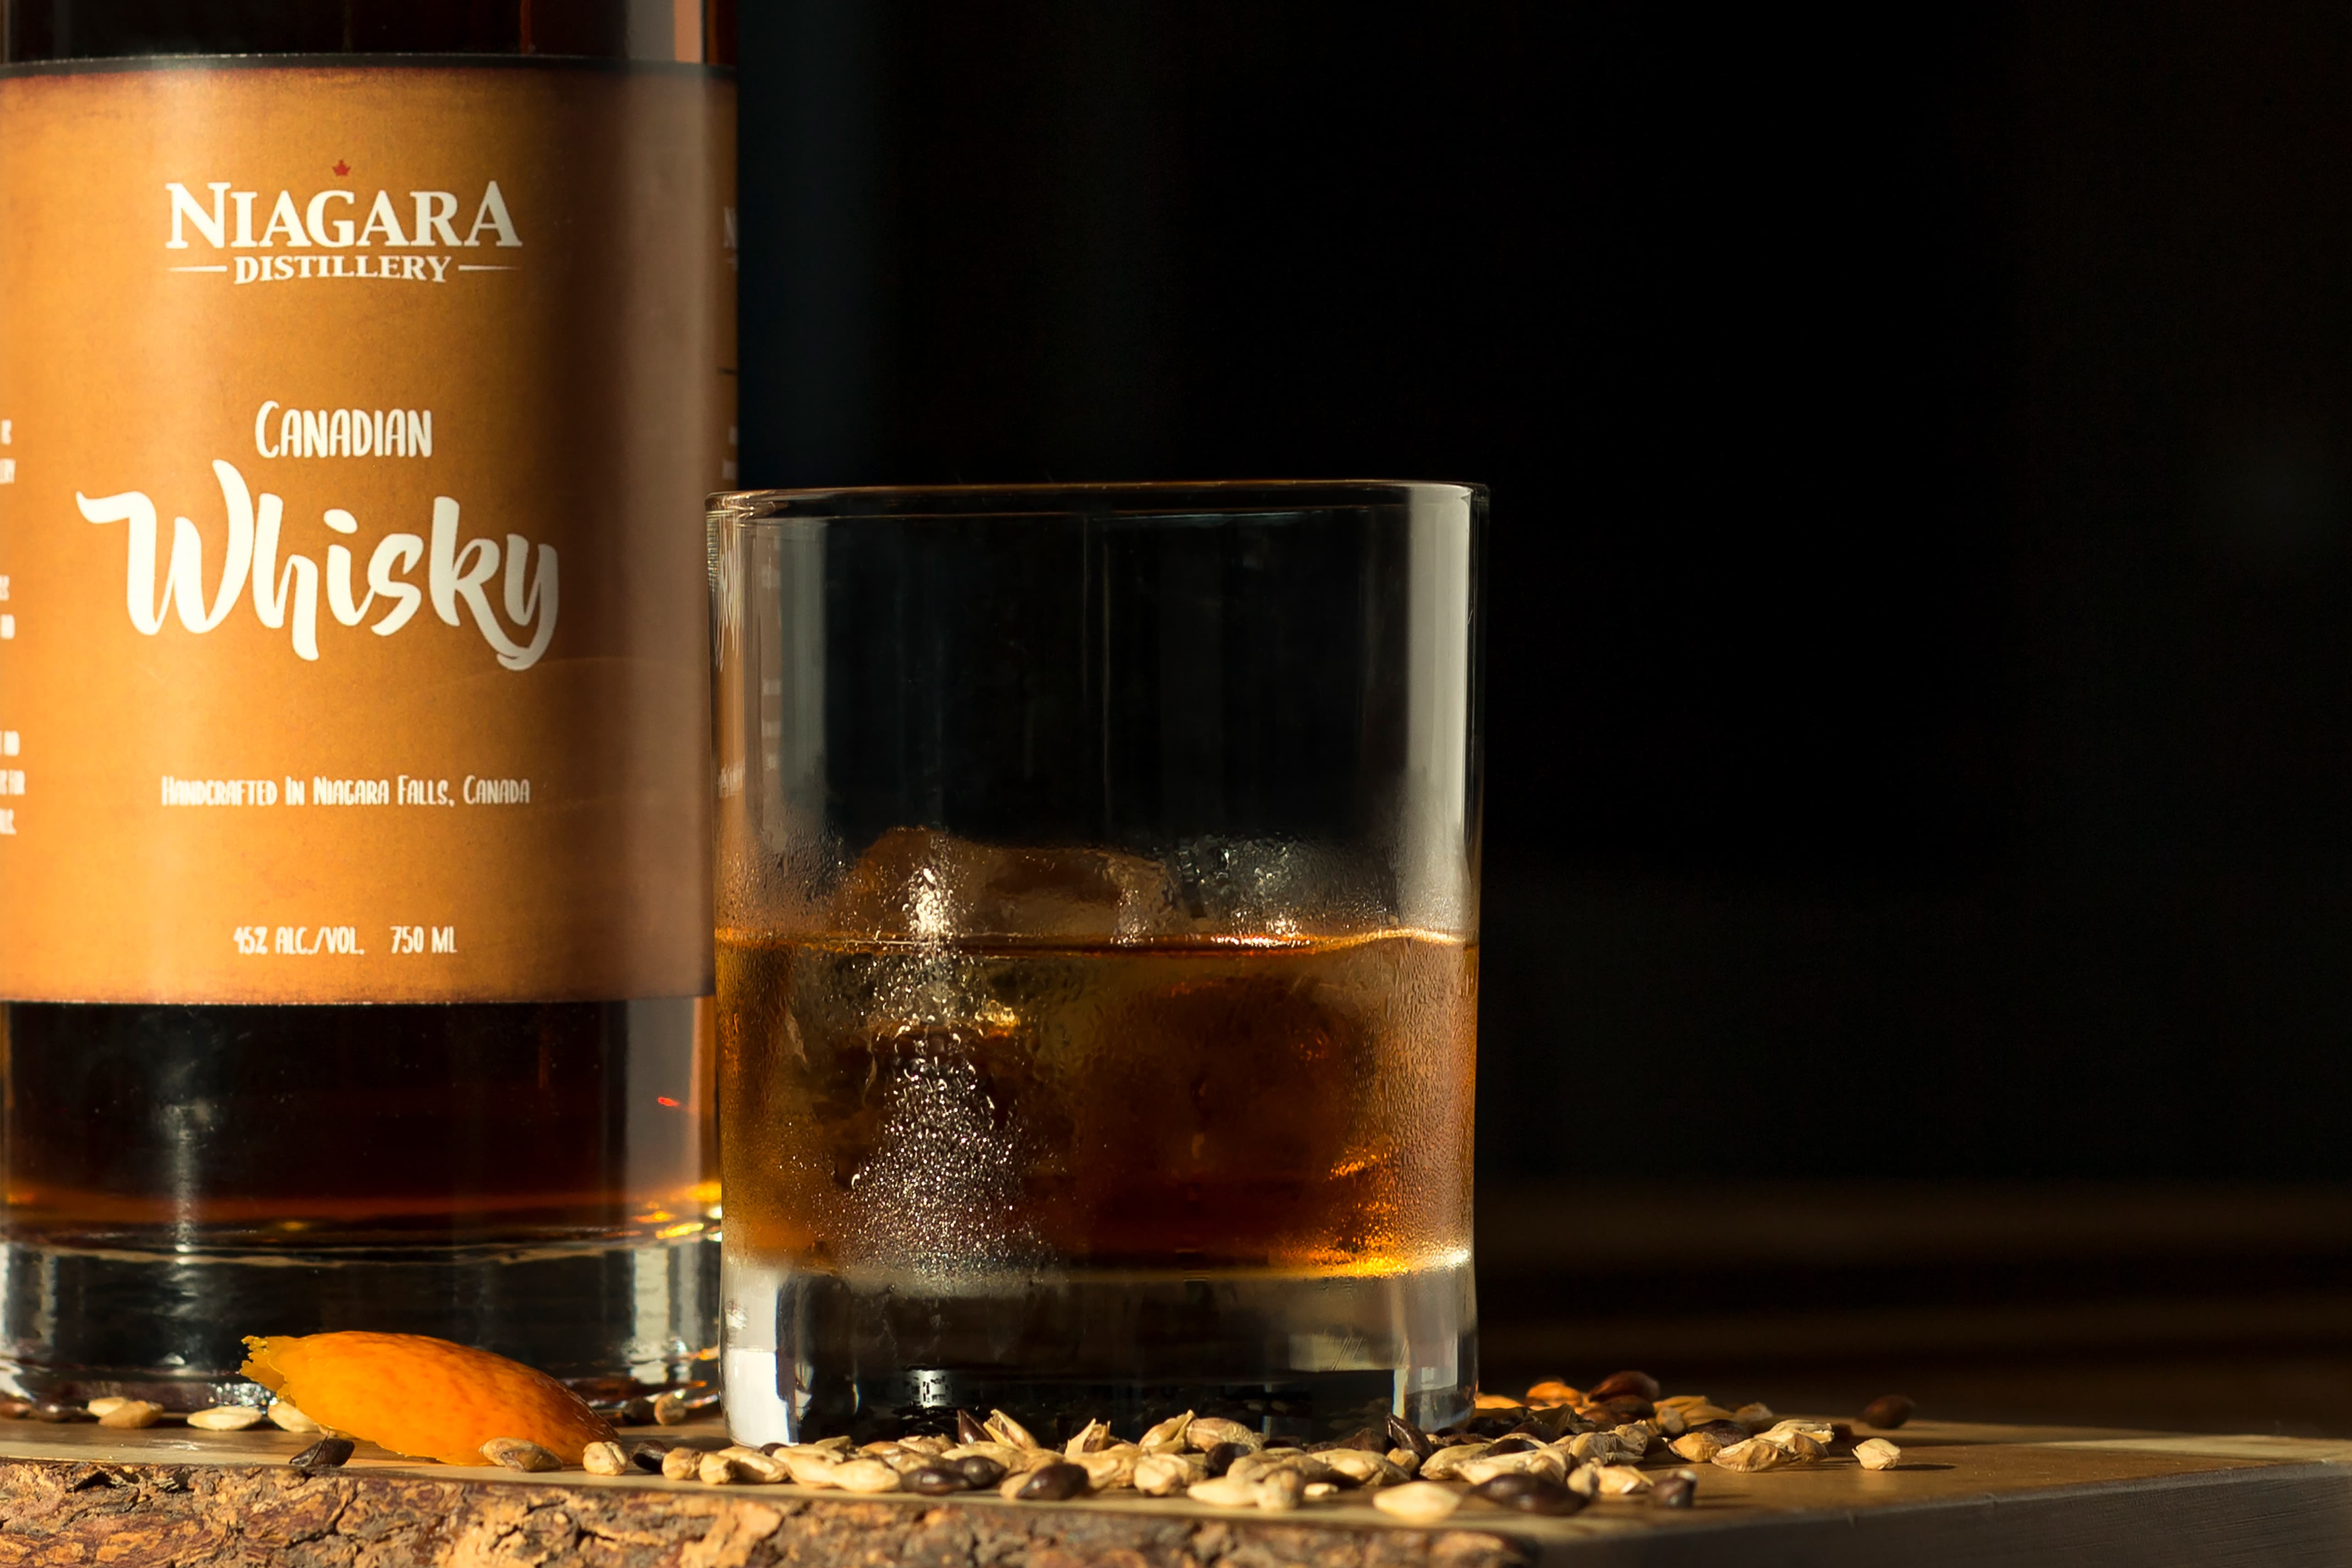 Niagara Distillery Whisky Glass